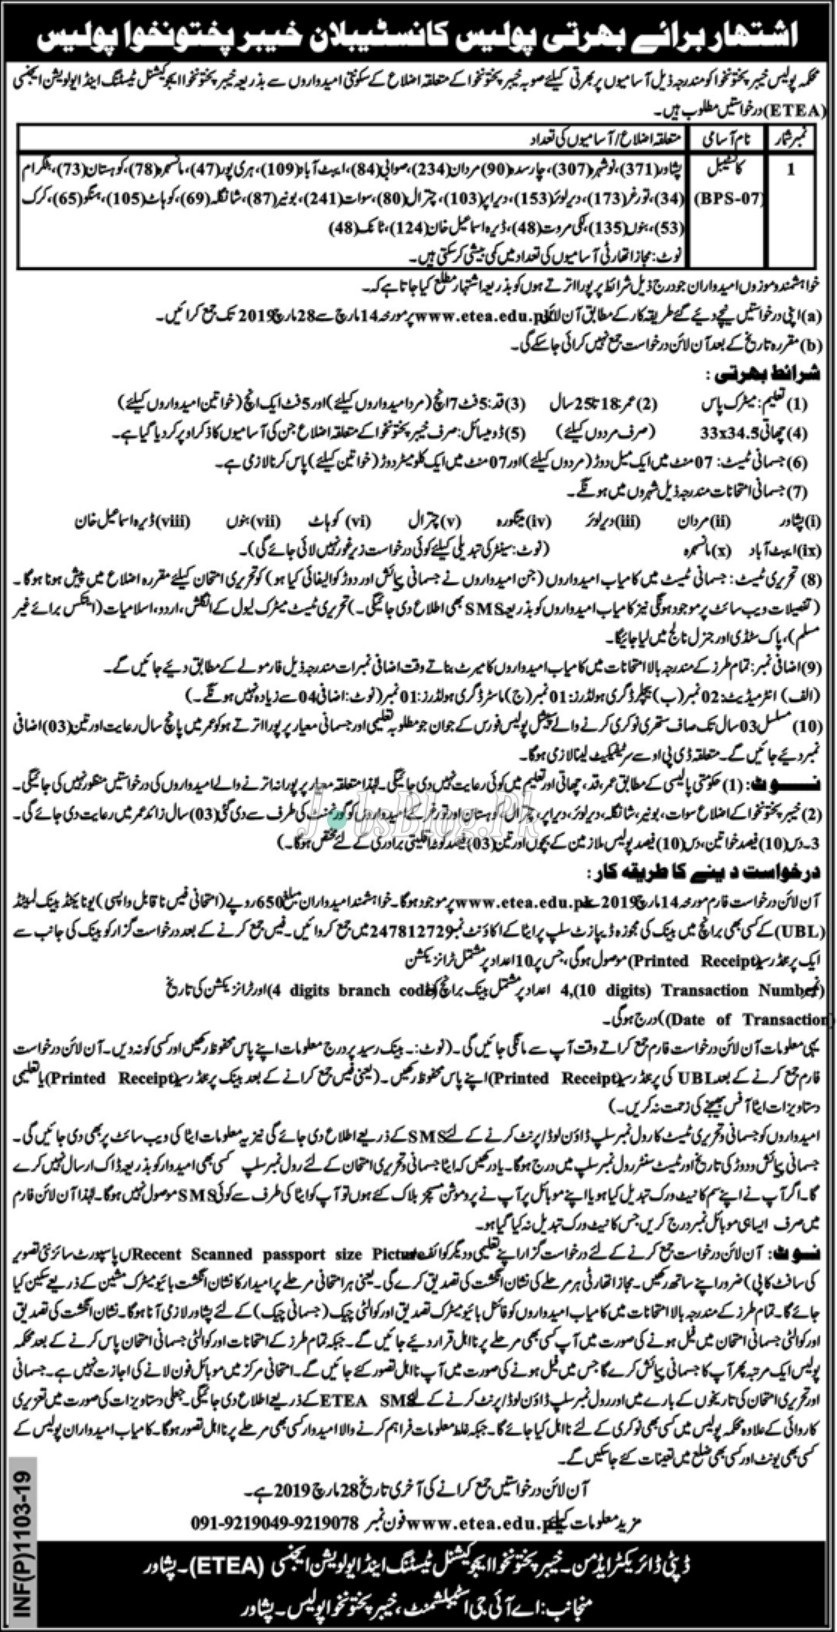 KPK Police Jobs 2019 ETEA Written Test Online Preparation